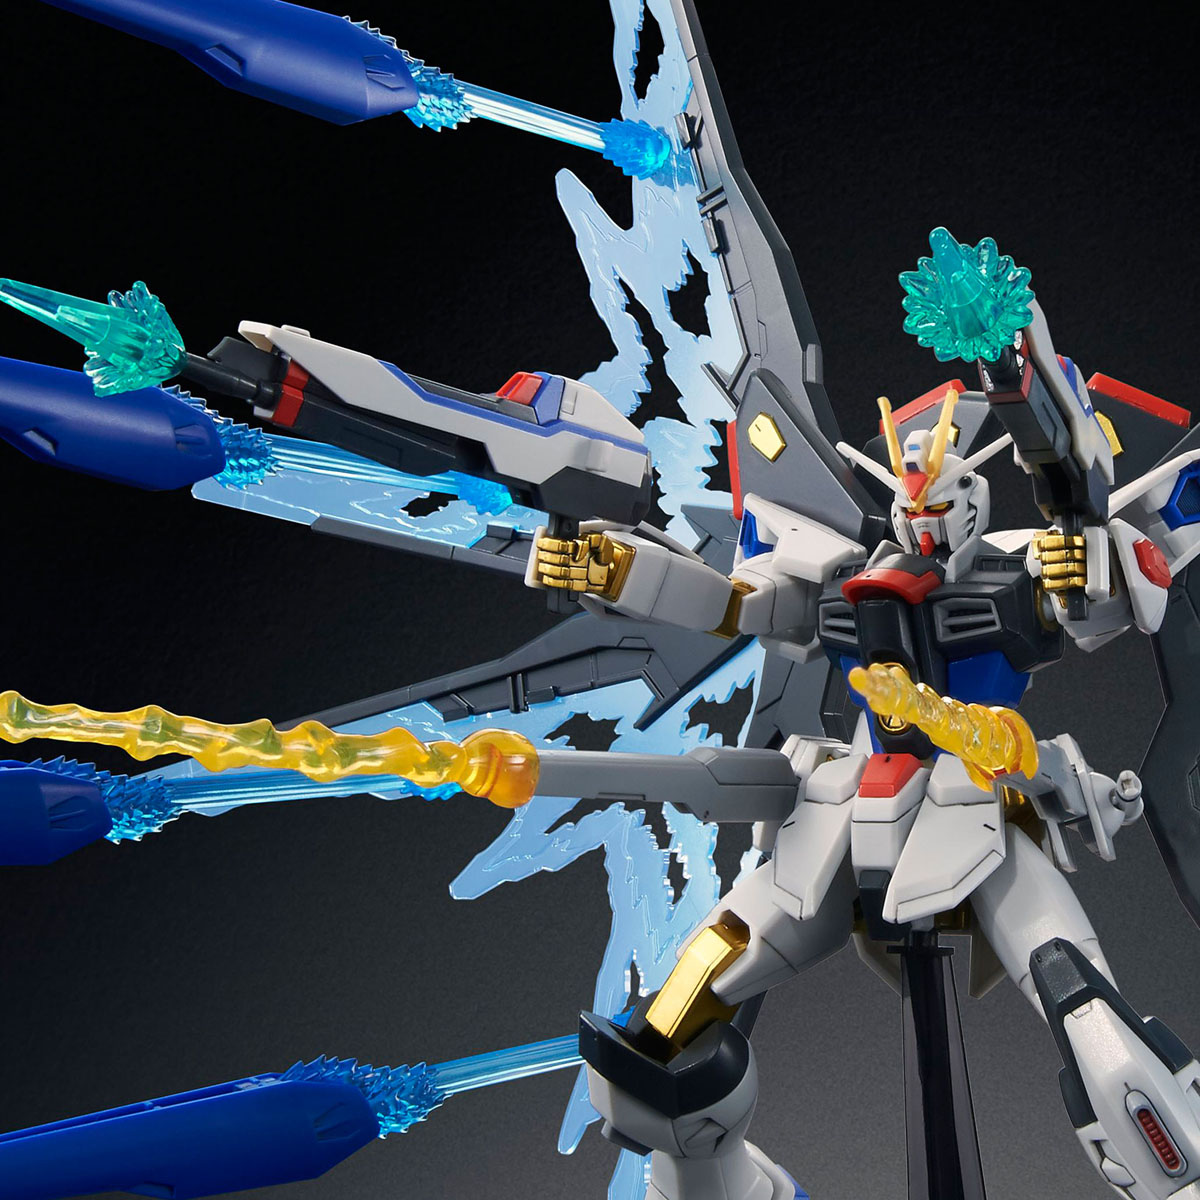 54930HGCE 1/144 ZGMF-X20A ストライクフリーダムガンダム 光の翼DXエディション [Strike Freedom Gundam (Revive Ver. Wing of Light DX Edition)]